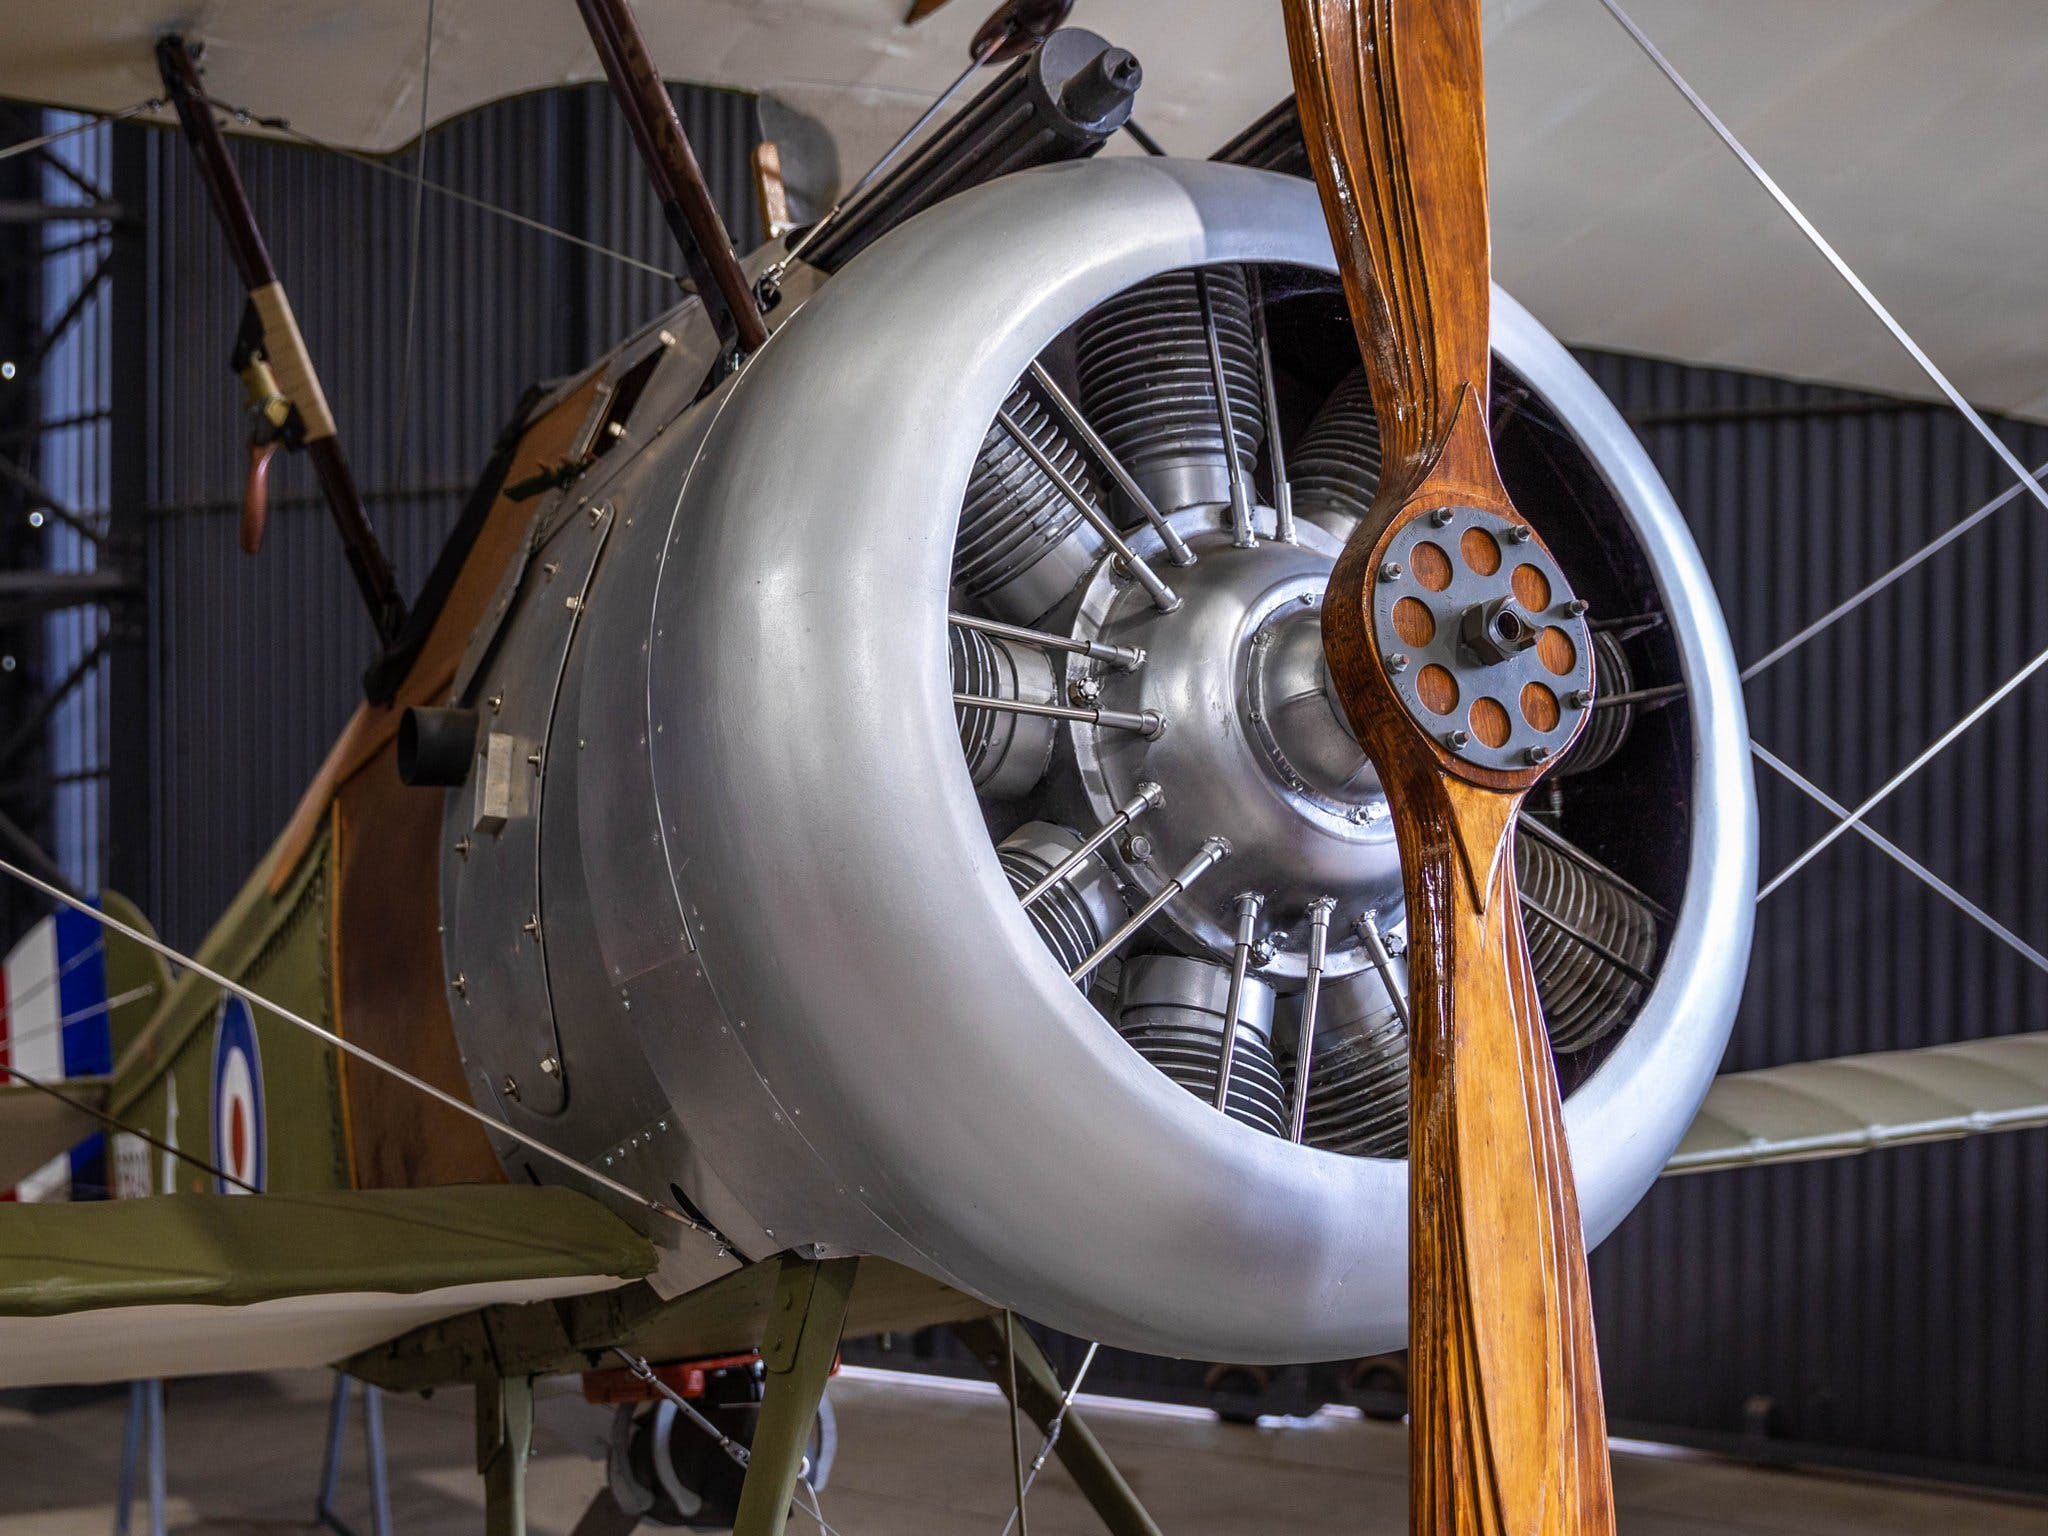 RAAF Amberley Aviation Heritage Centre - ACT Tourism